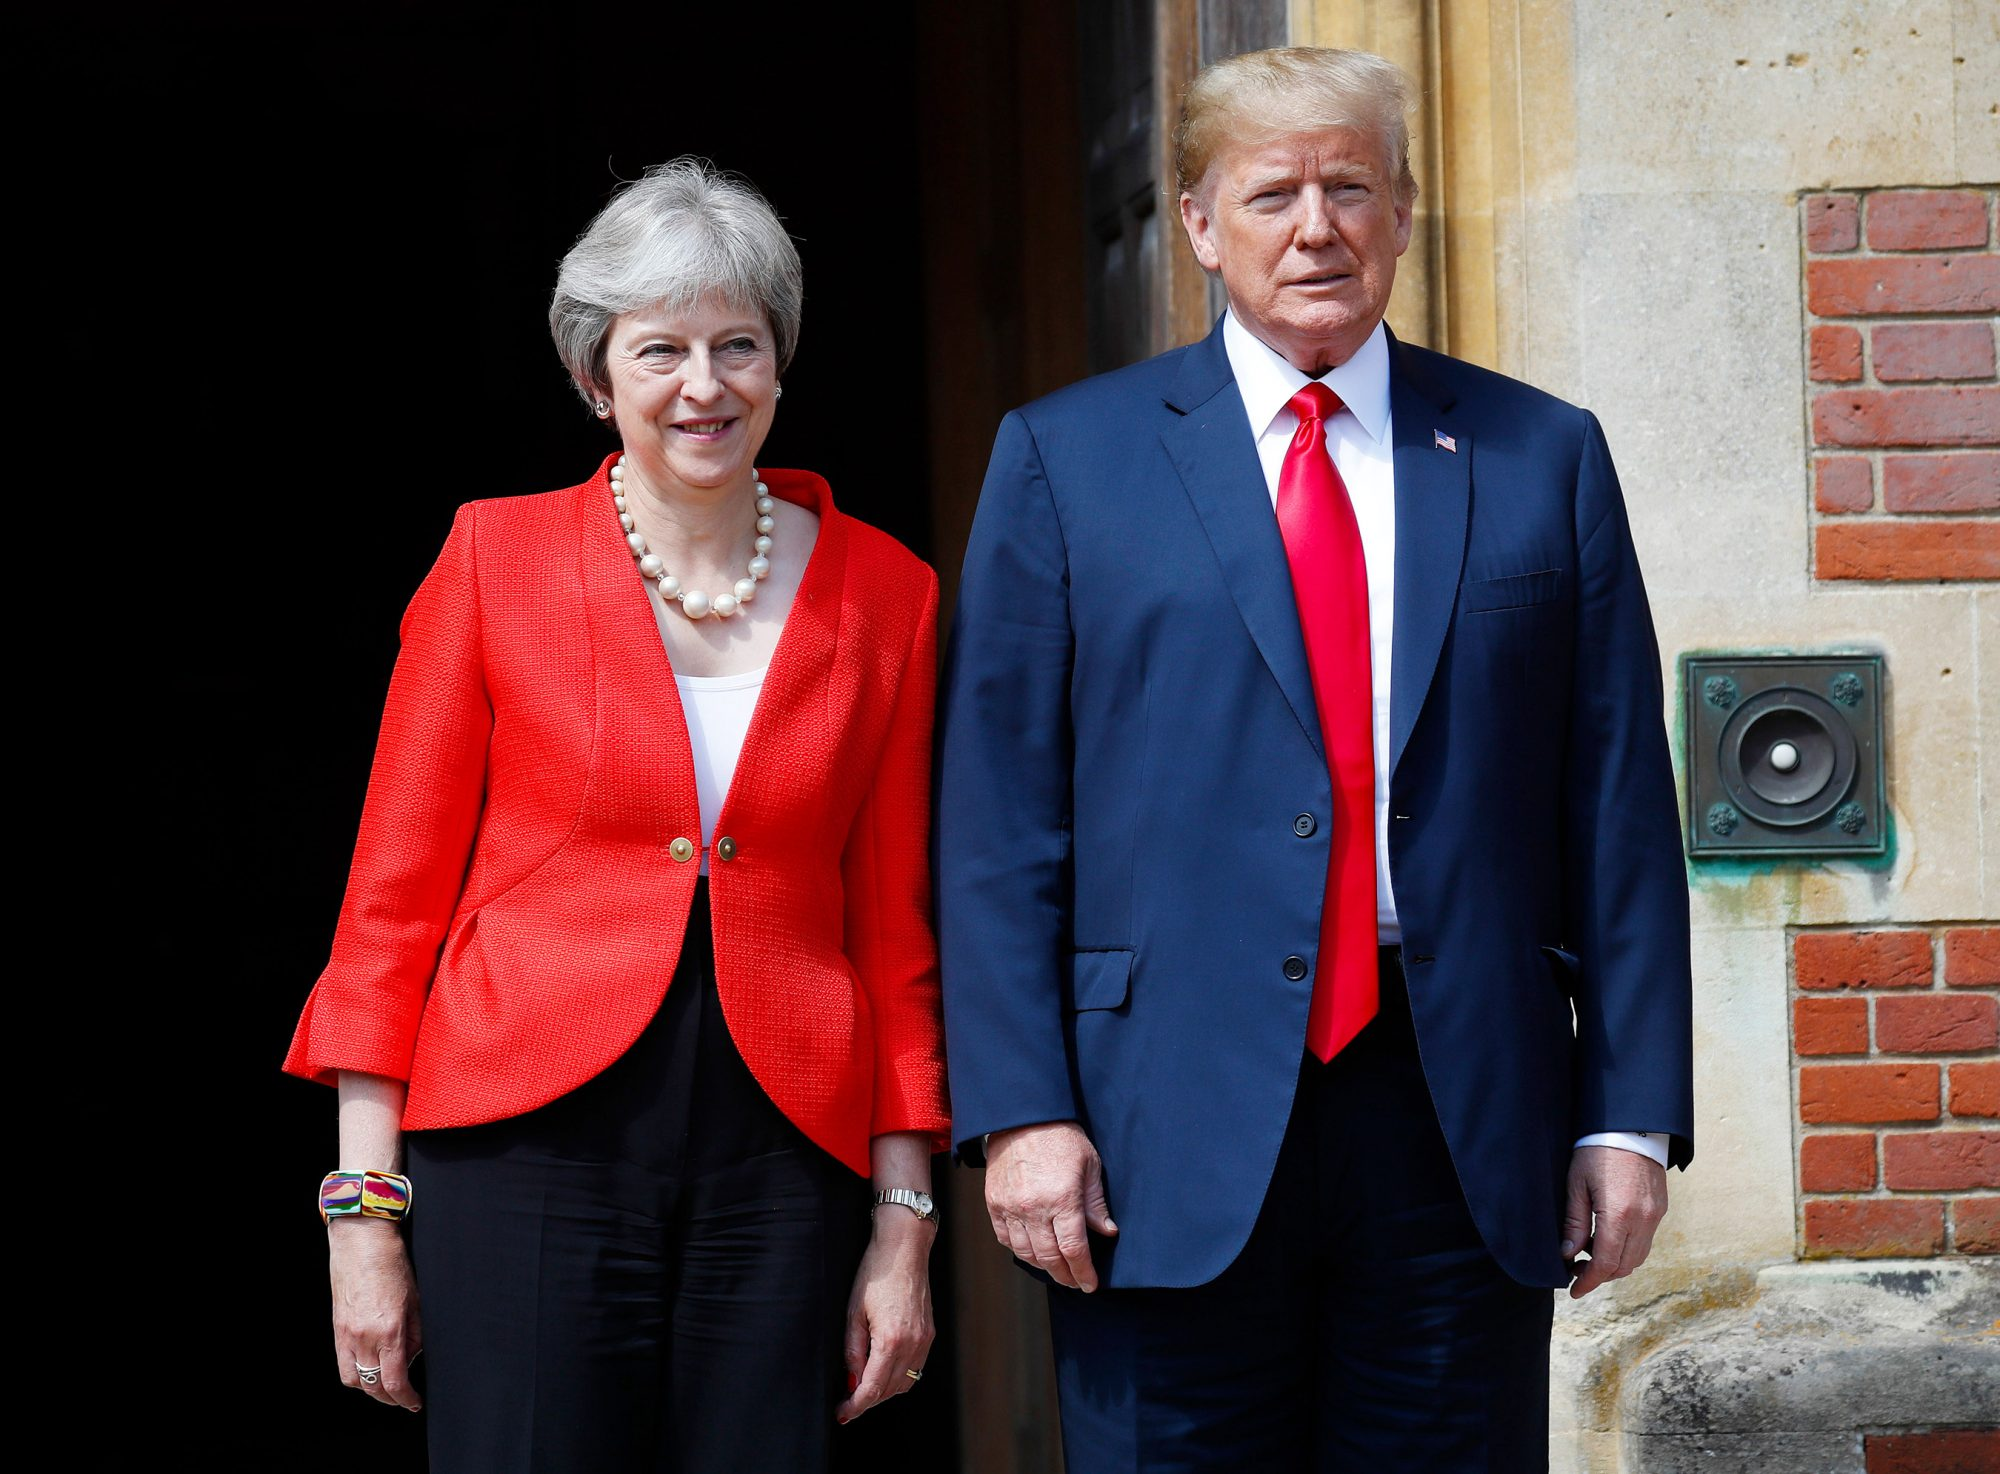 Trump, Buckinghamshire, United Kingdom - 13 Jul 2018